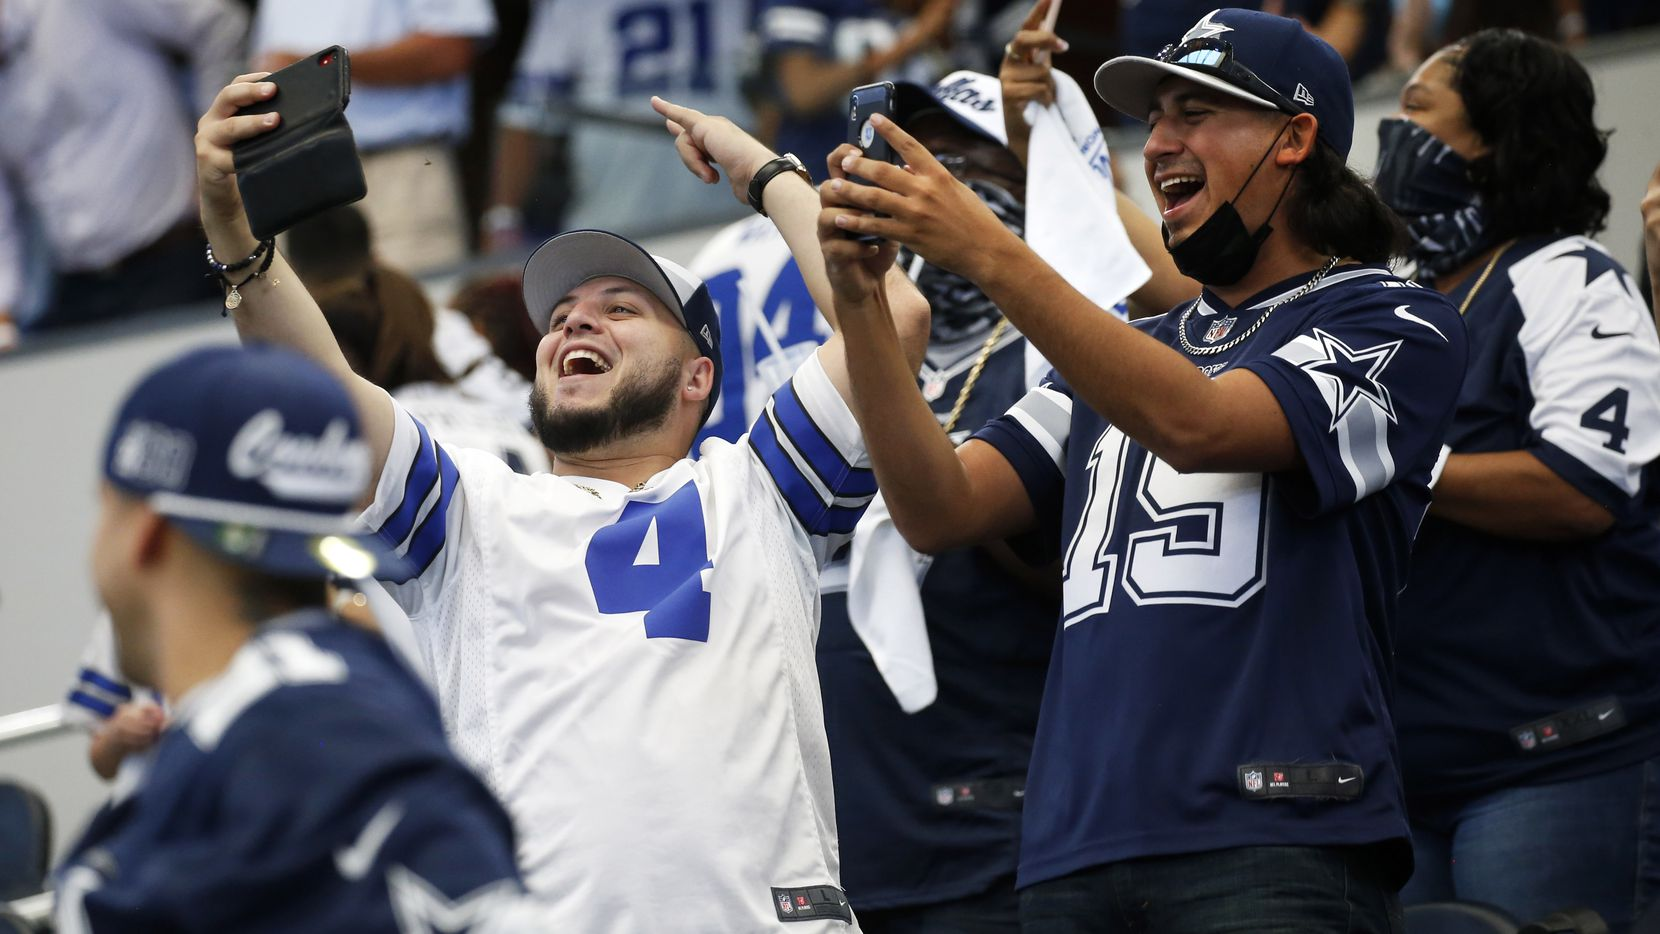 Cowboys fans celebrate after Cowboys kicker Greg Zuerlein (2) kicks the winning field goal in the final seconds of a game against the Falcons at AT&T Stadium in Arlington on Sunday, Sept. 20, 2020.